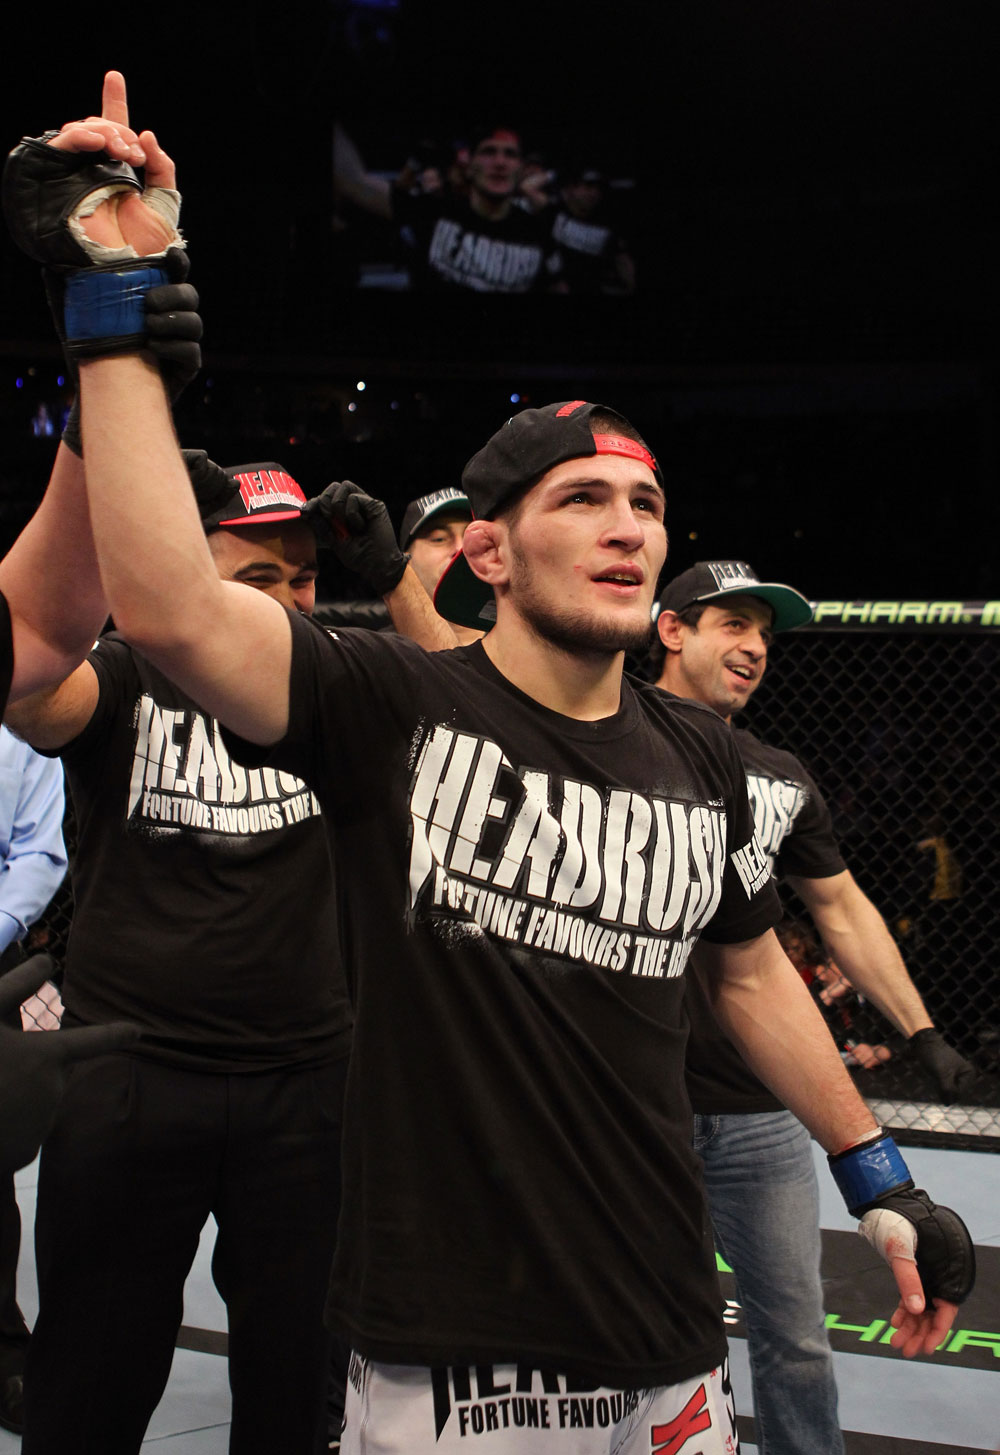 NASHVILLE, TN - JANUARY 20:  Khabib Nurmagomedov reacts after defeating Kamal Shalorus during the UFC on FX event at Bridgestone Arena on January 20, 2012 in Nashville, Tennessee.  (Photo by Josh Hedges/Zuffa LLC/Zuffa LLC via Getty Images)